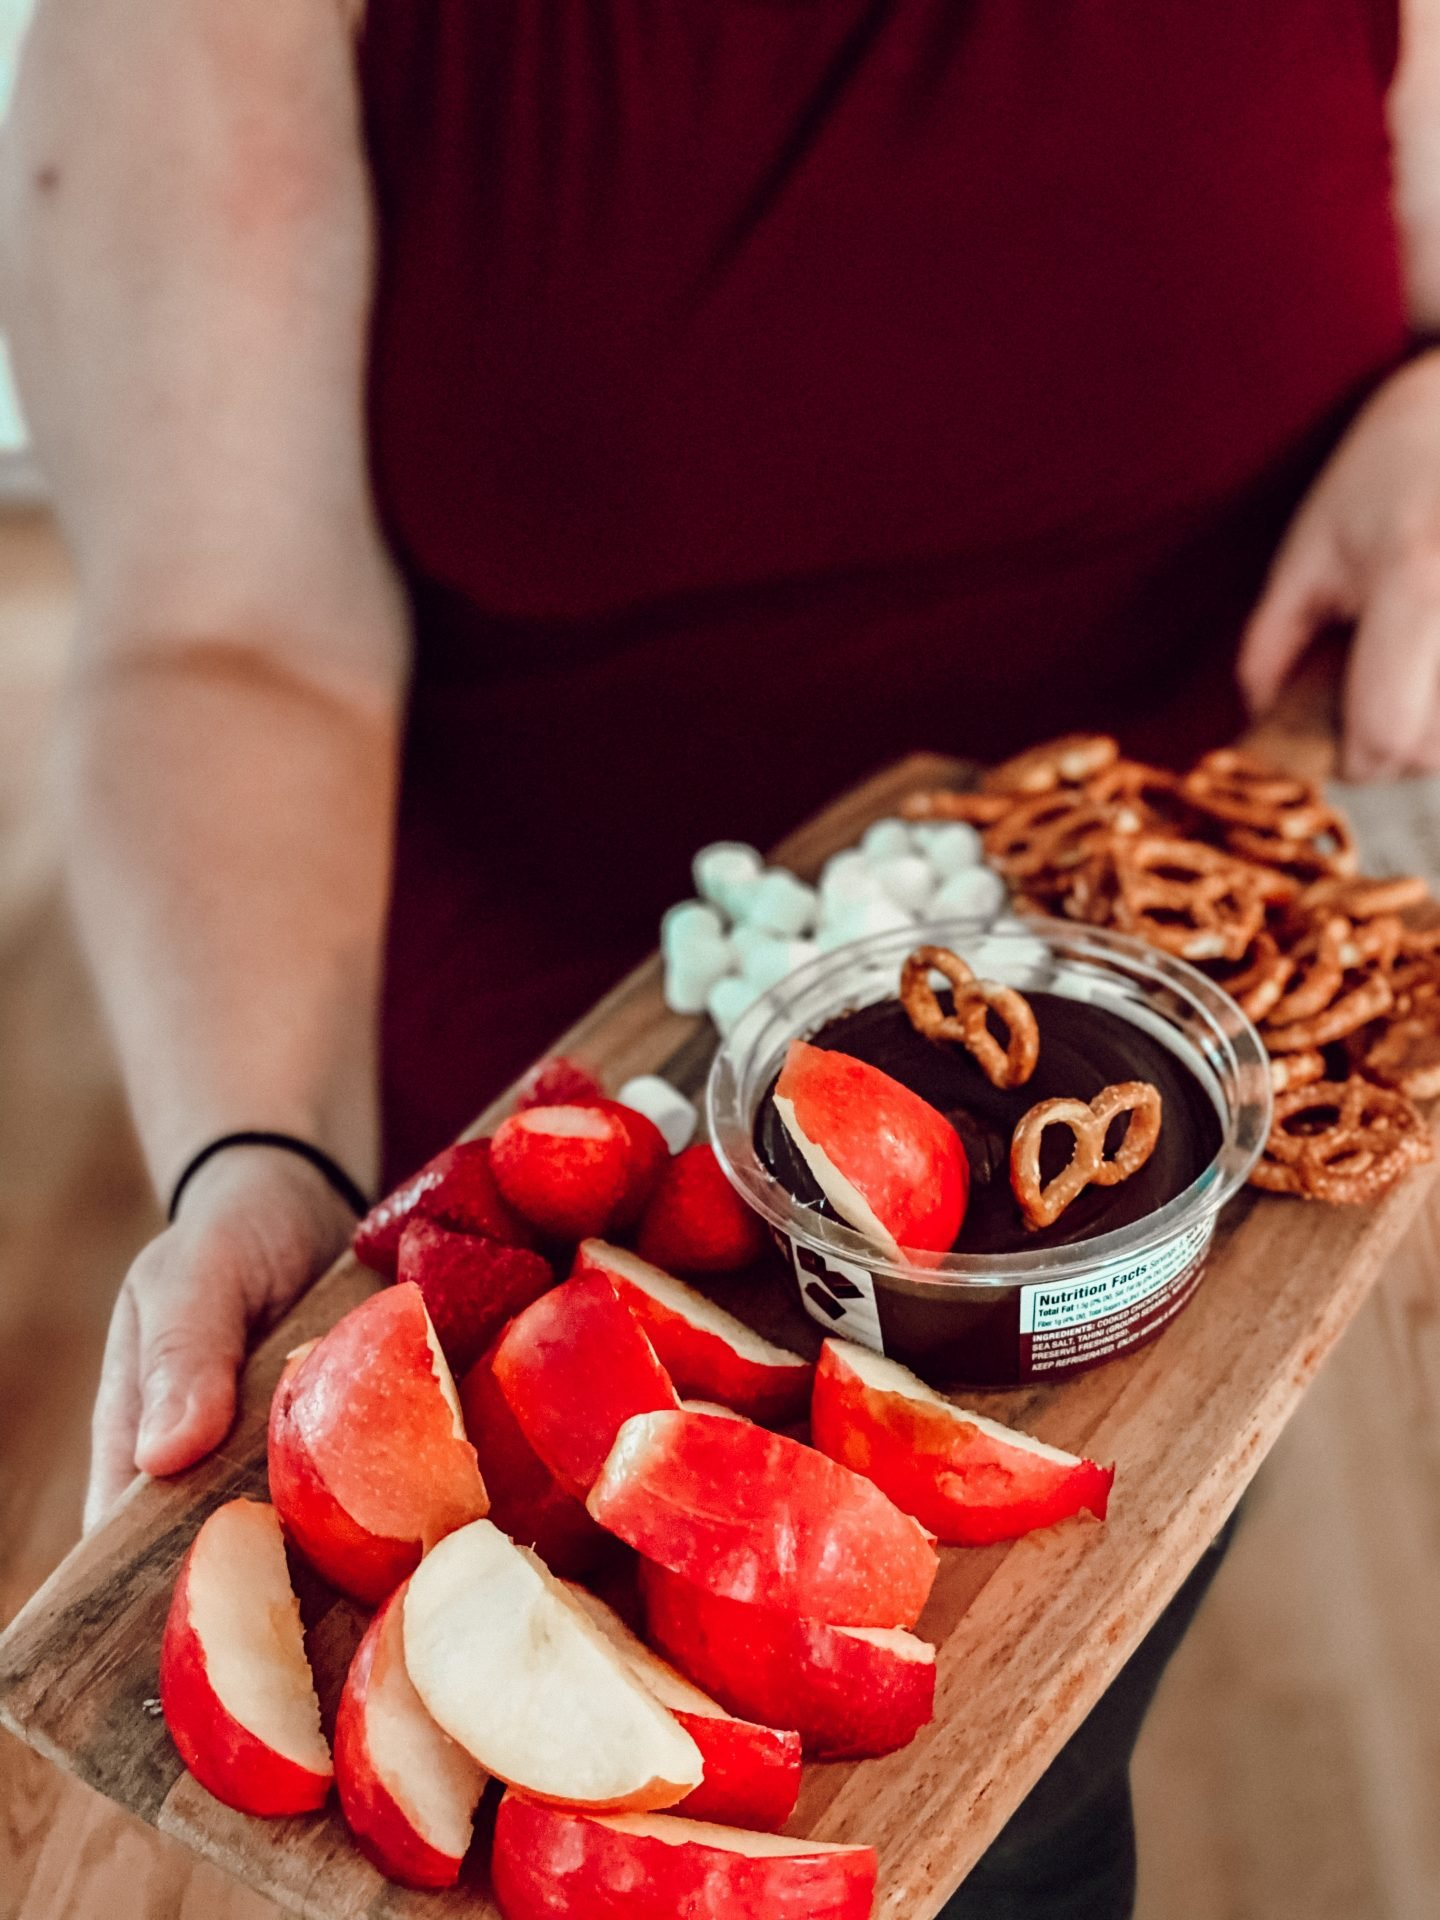 Fruit and sweets snack board with Tribe Hummus | #ad #TribeVDayTreats #tribehummus #valentinesdaysnack